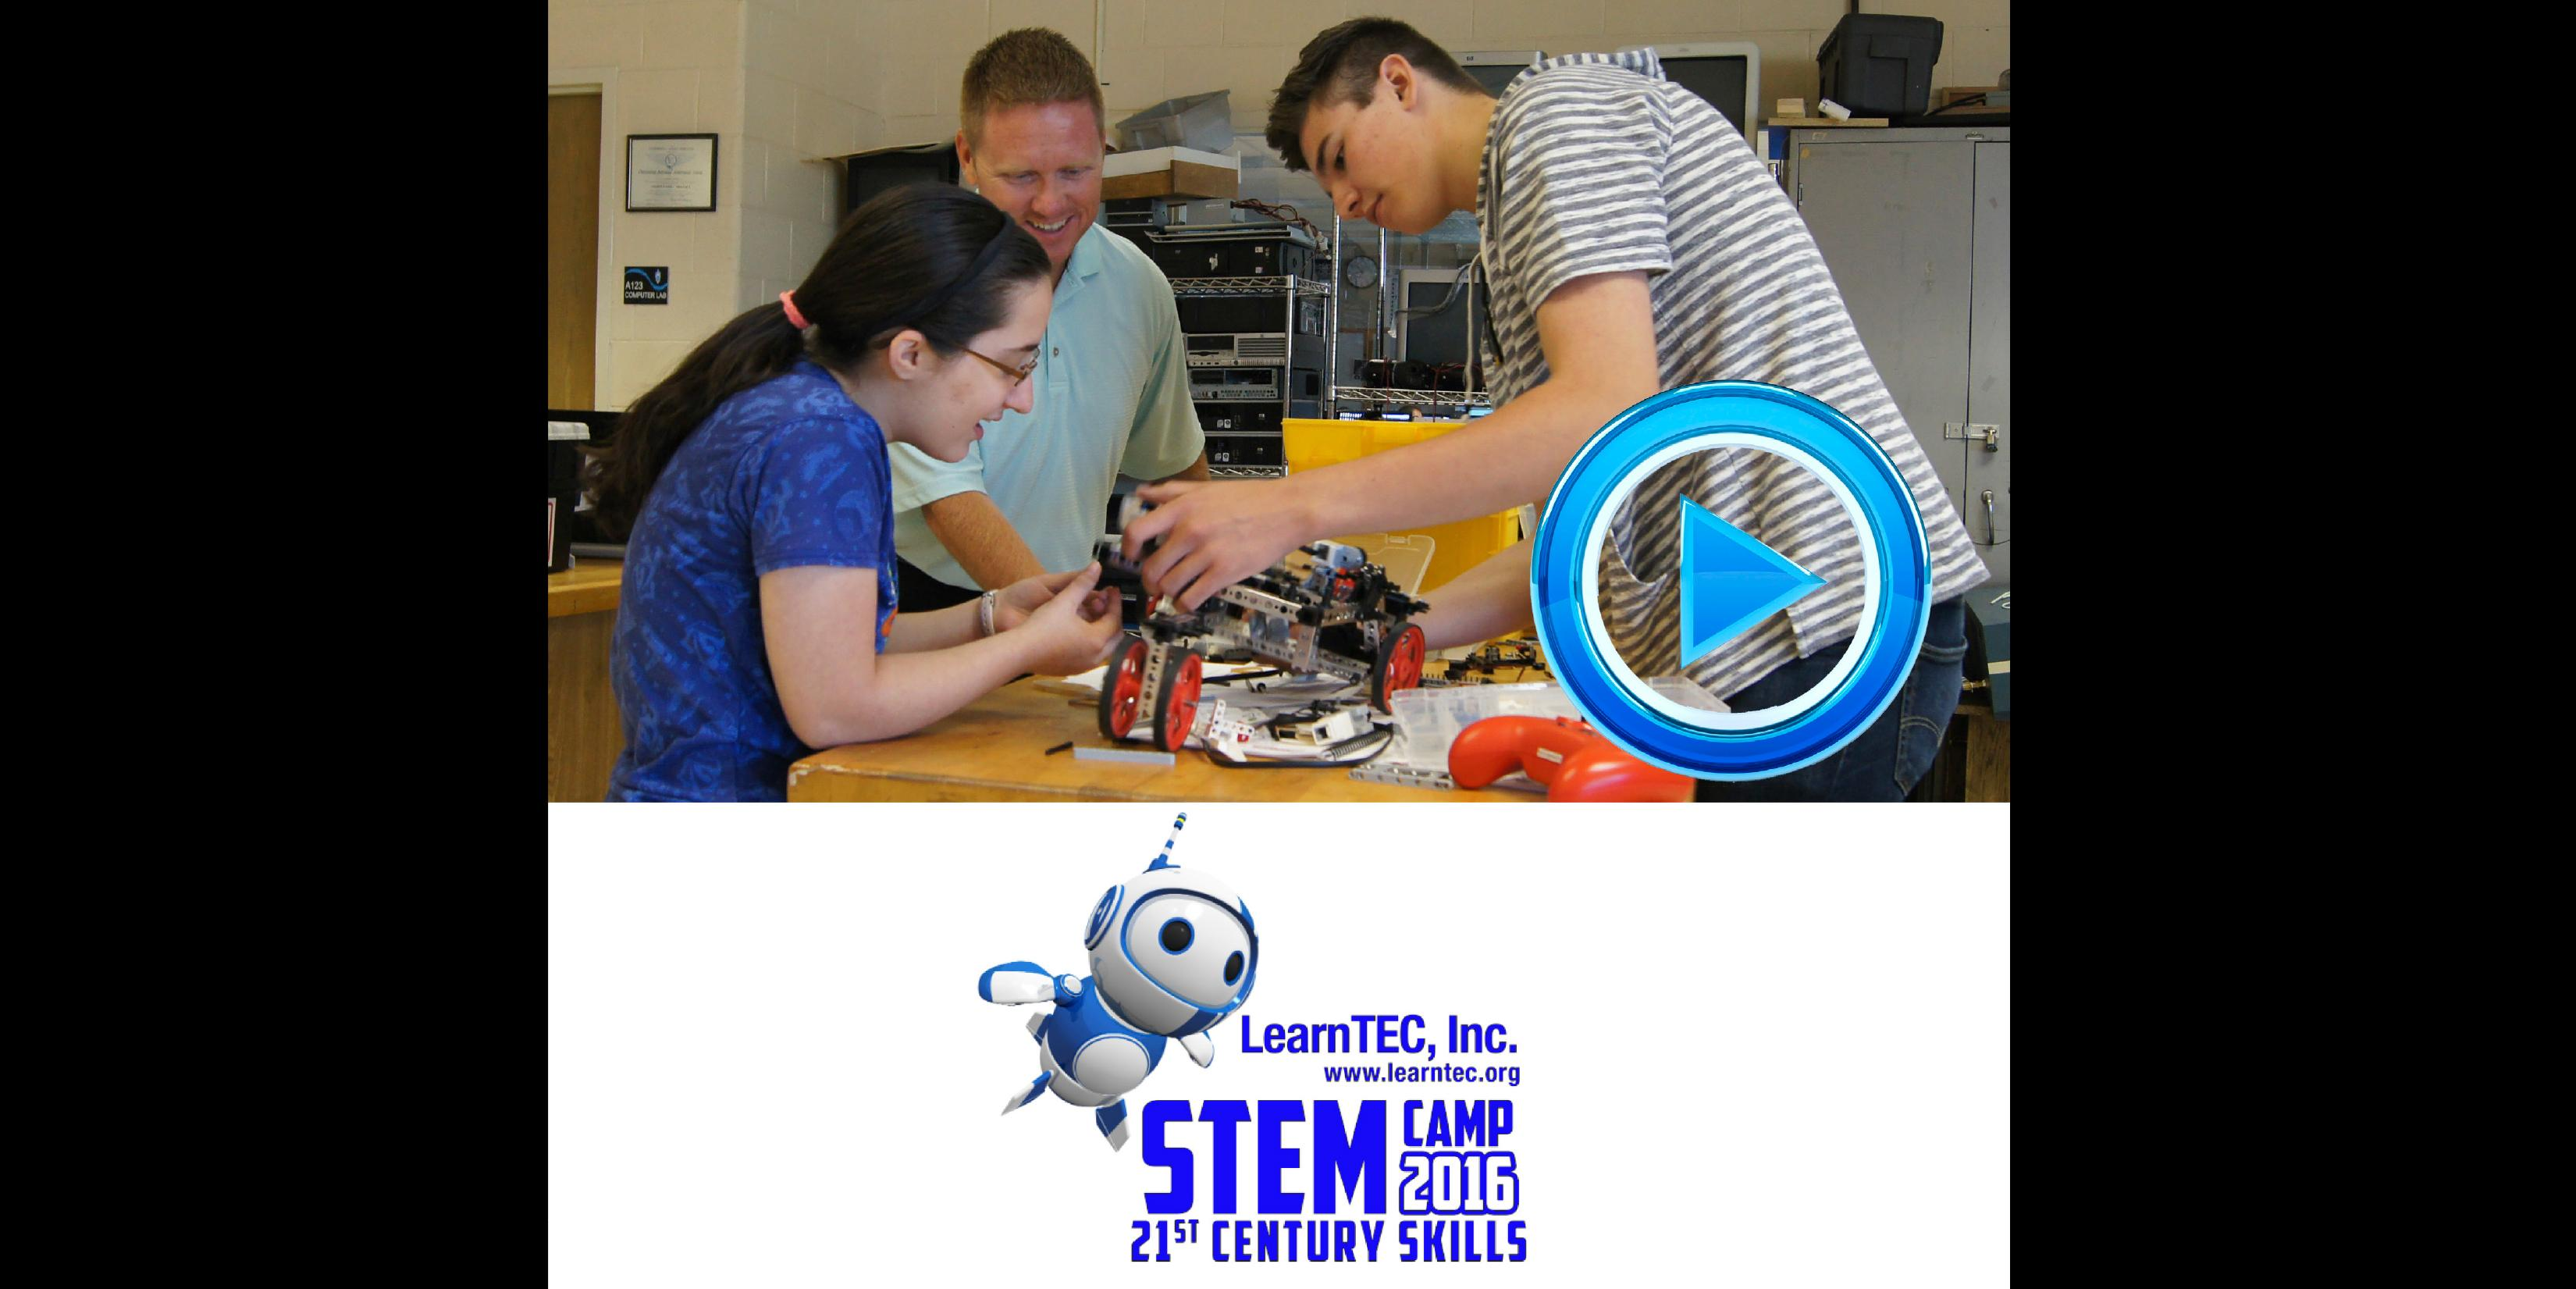 Students from school districts 88, 45 and 4 participate in a STEM camp